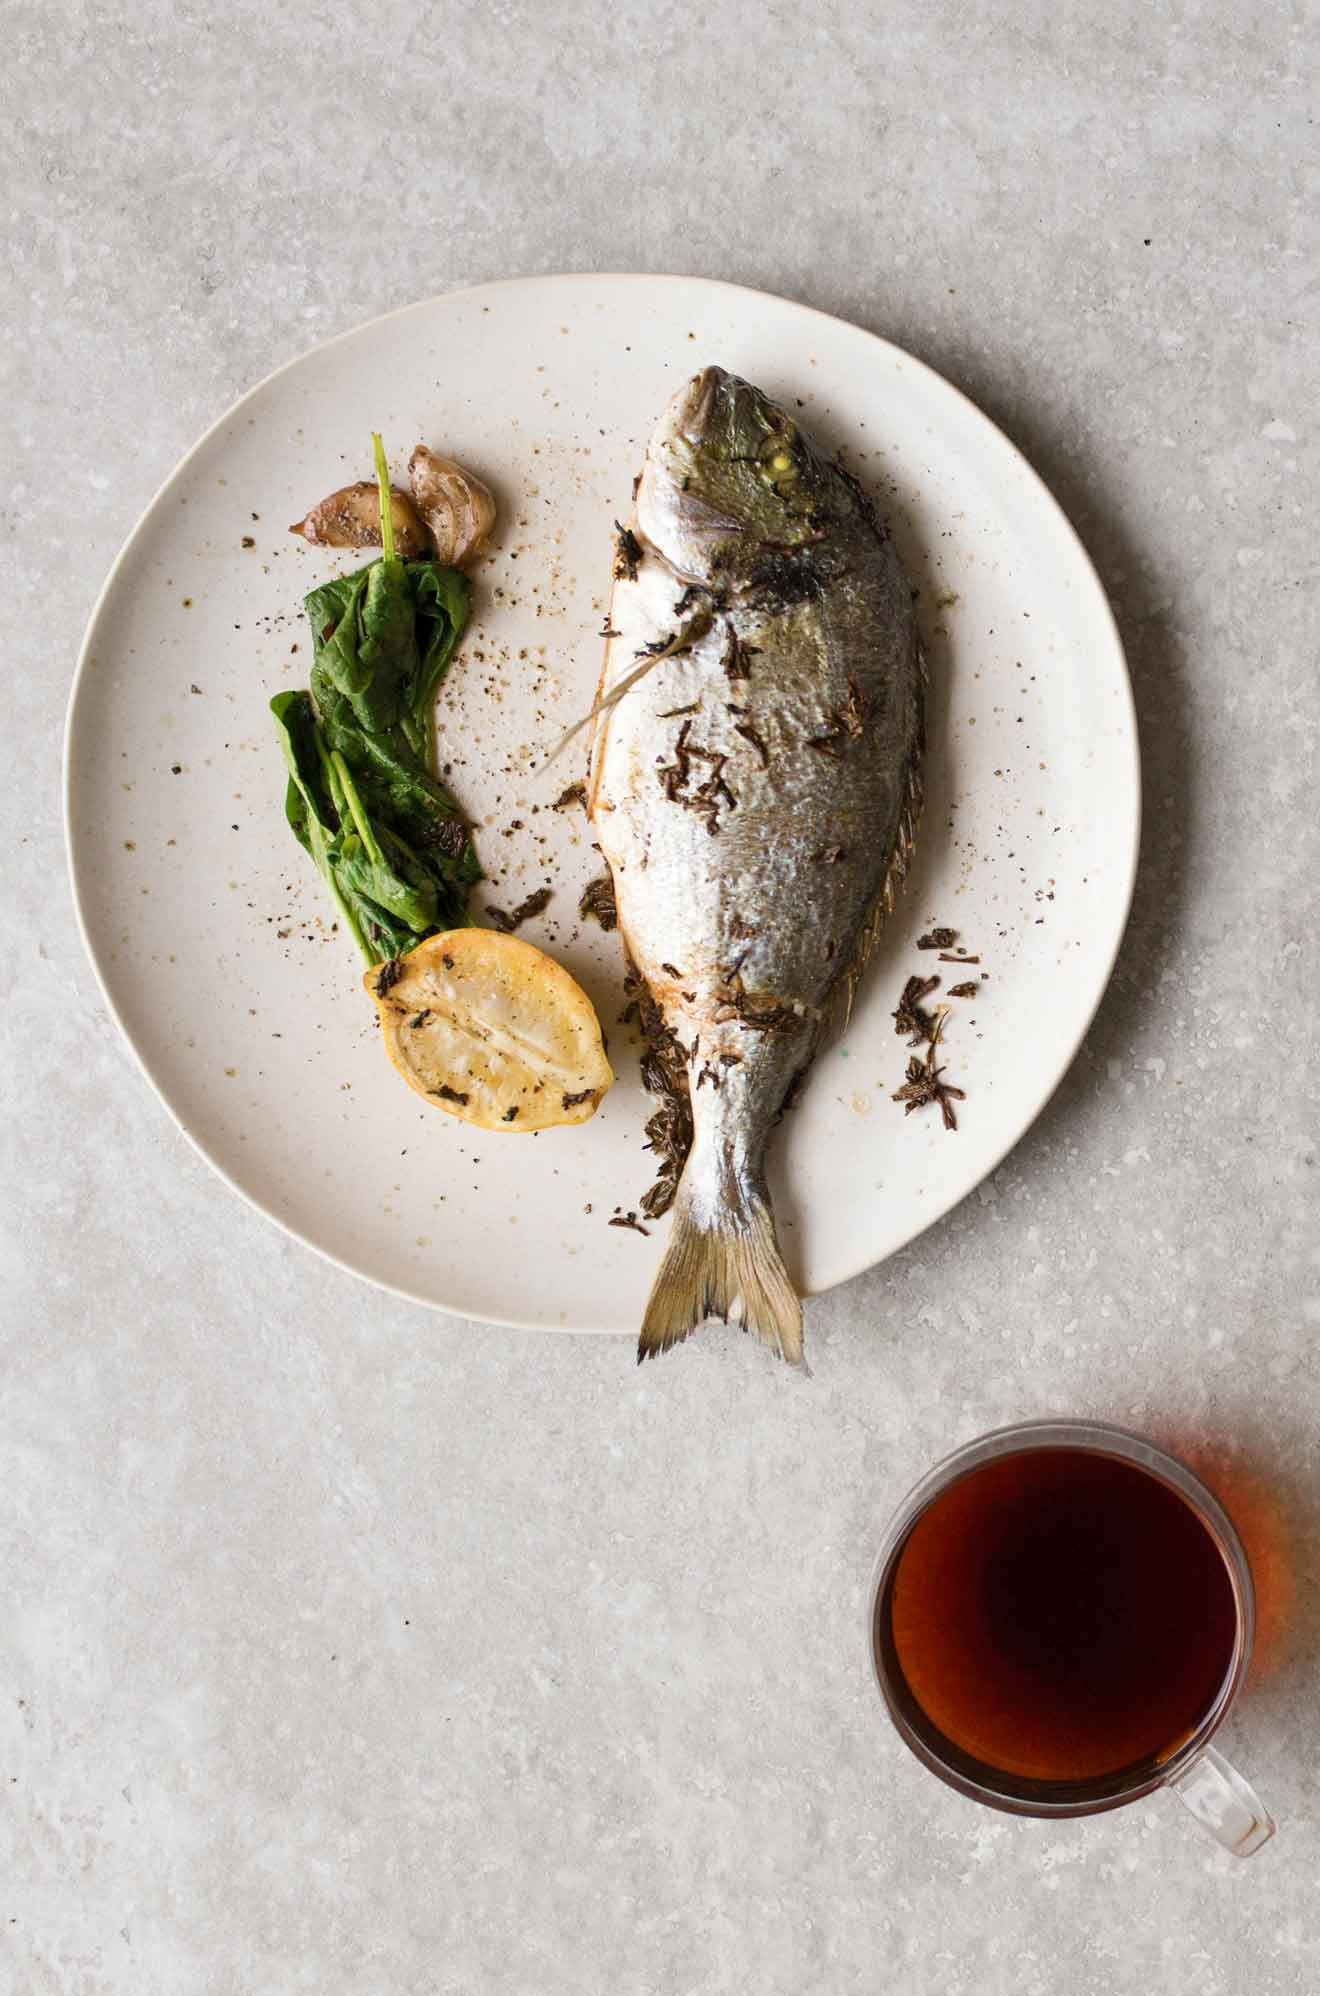 A recipe for Earl Grey baked fish - an ideal tea recipe for Christmas.